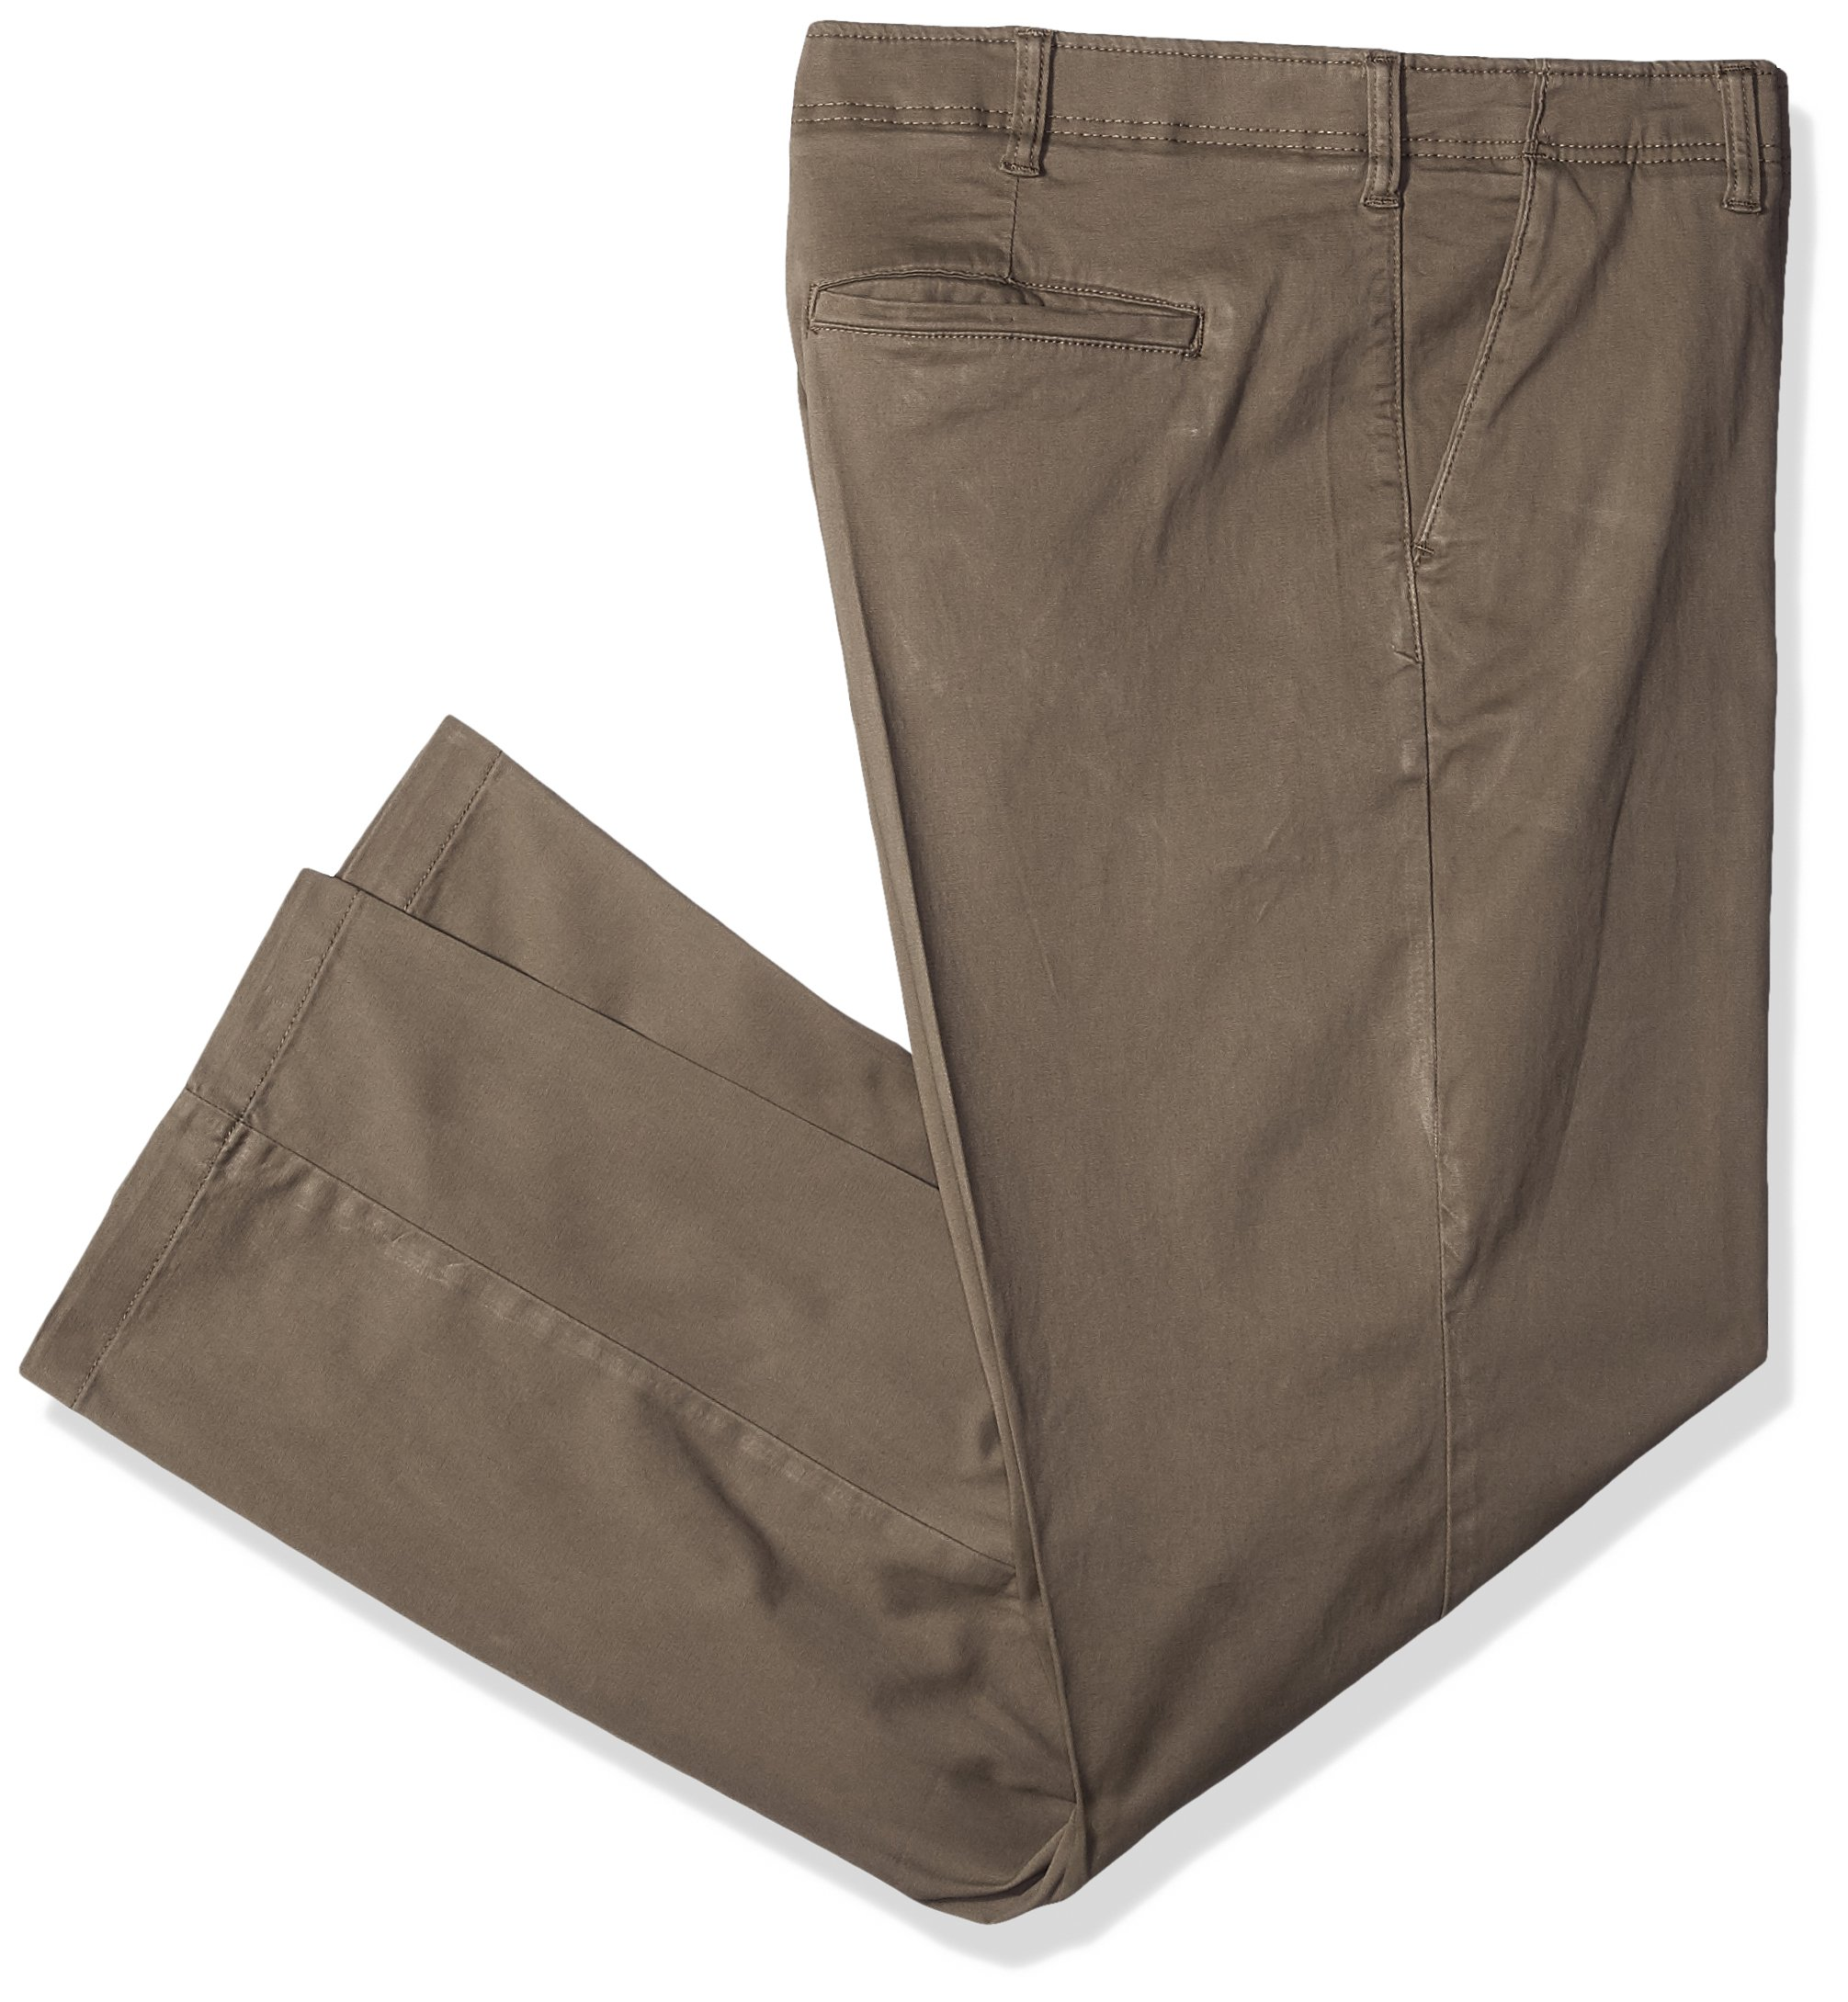 Lee Men's Big and Tall Performance Series Extreme Comfort Khaki Pant, Woodspice, 50W x 30L by LEE (Image #1)